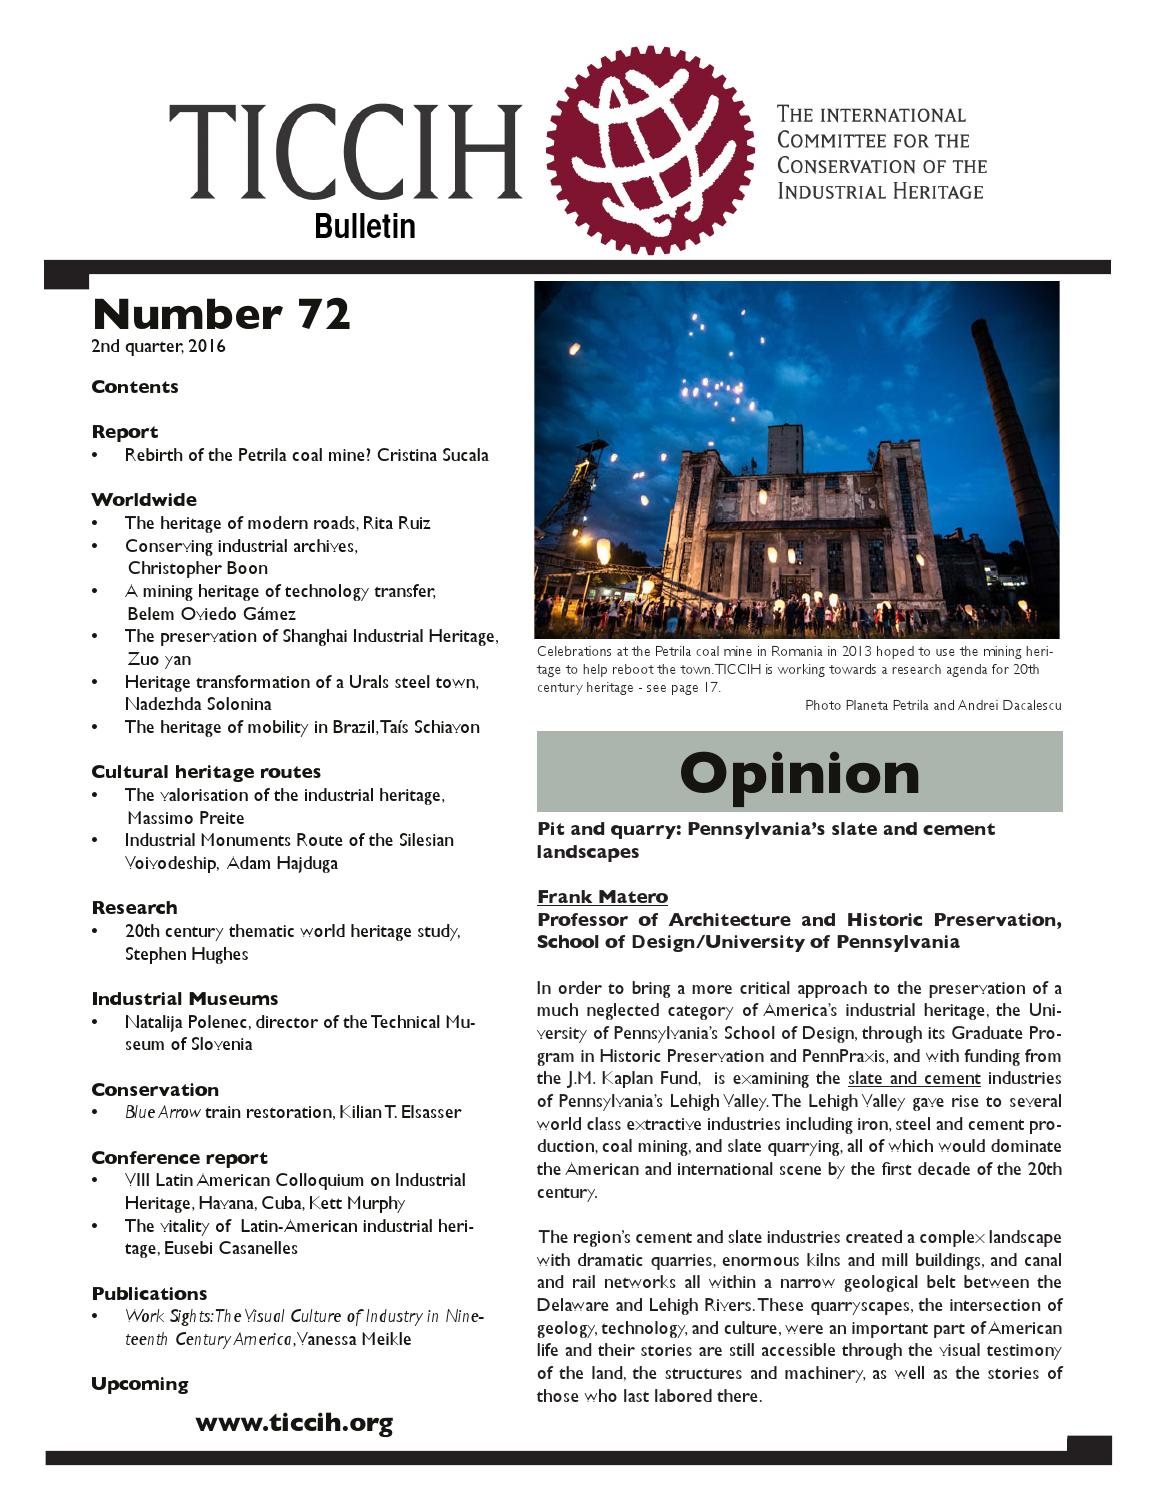 TICCIH Bulletin No  72 - 2nd quarter, 2016 by TICCIH - The